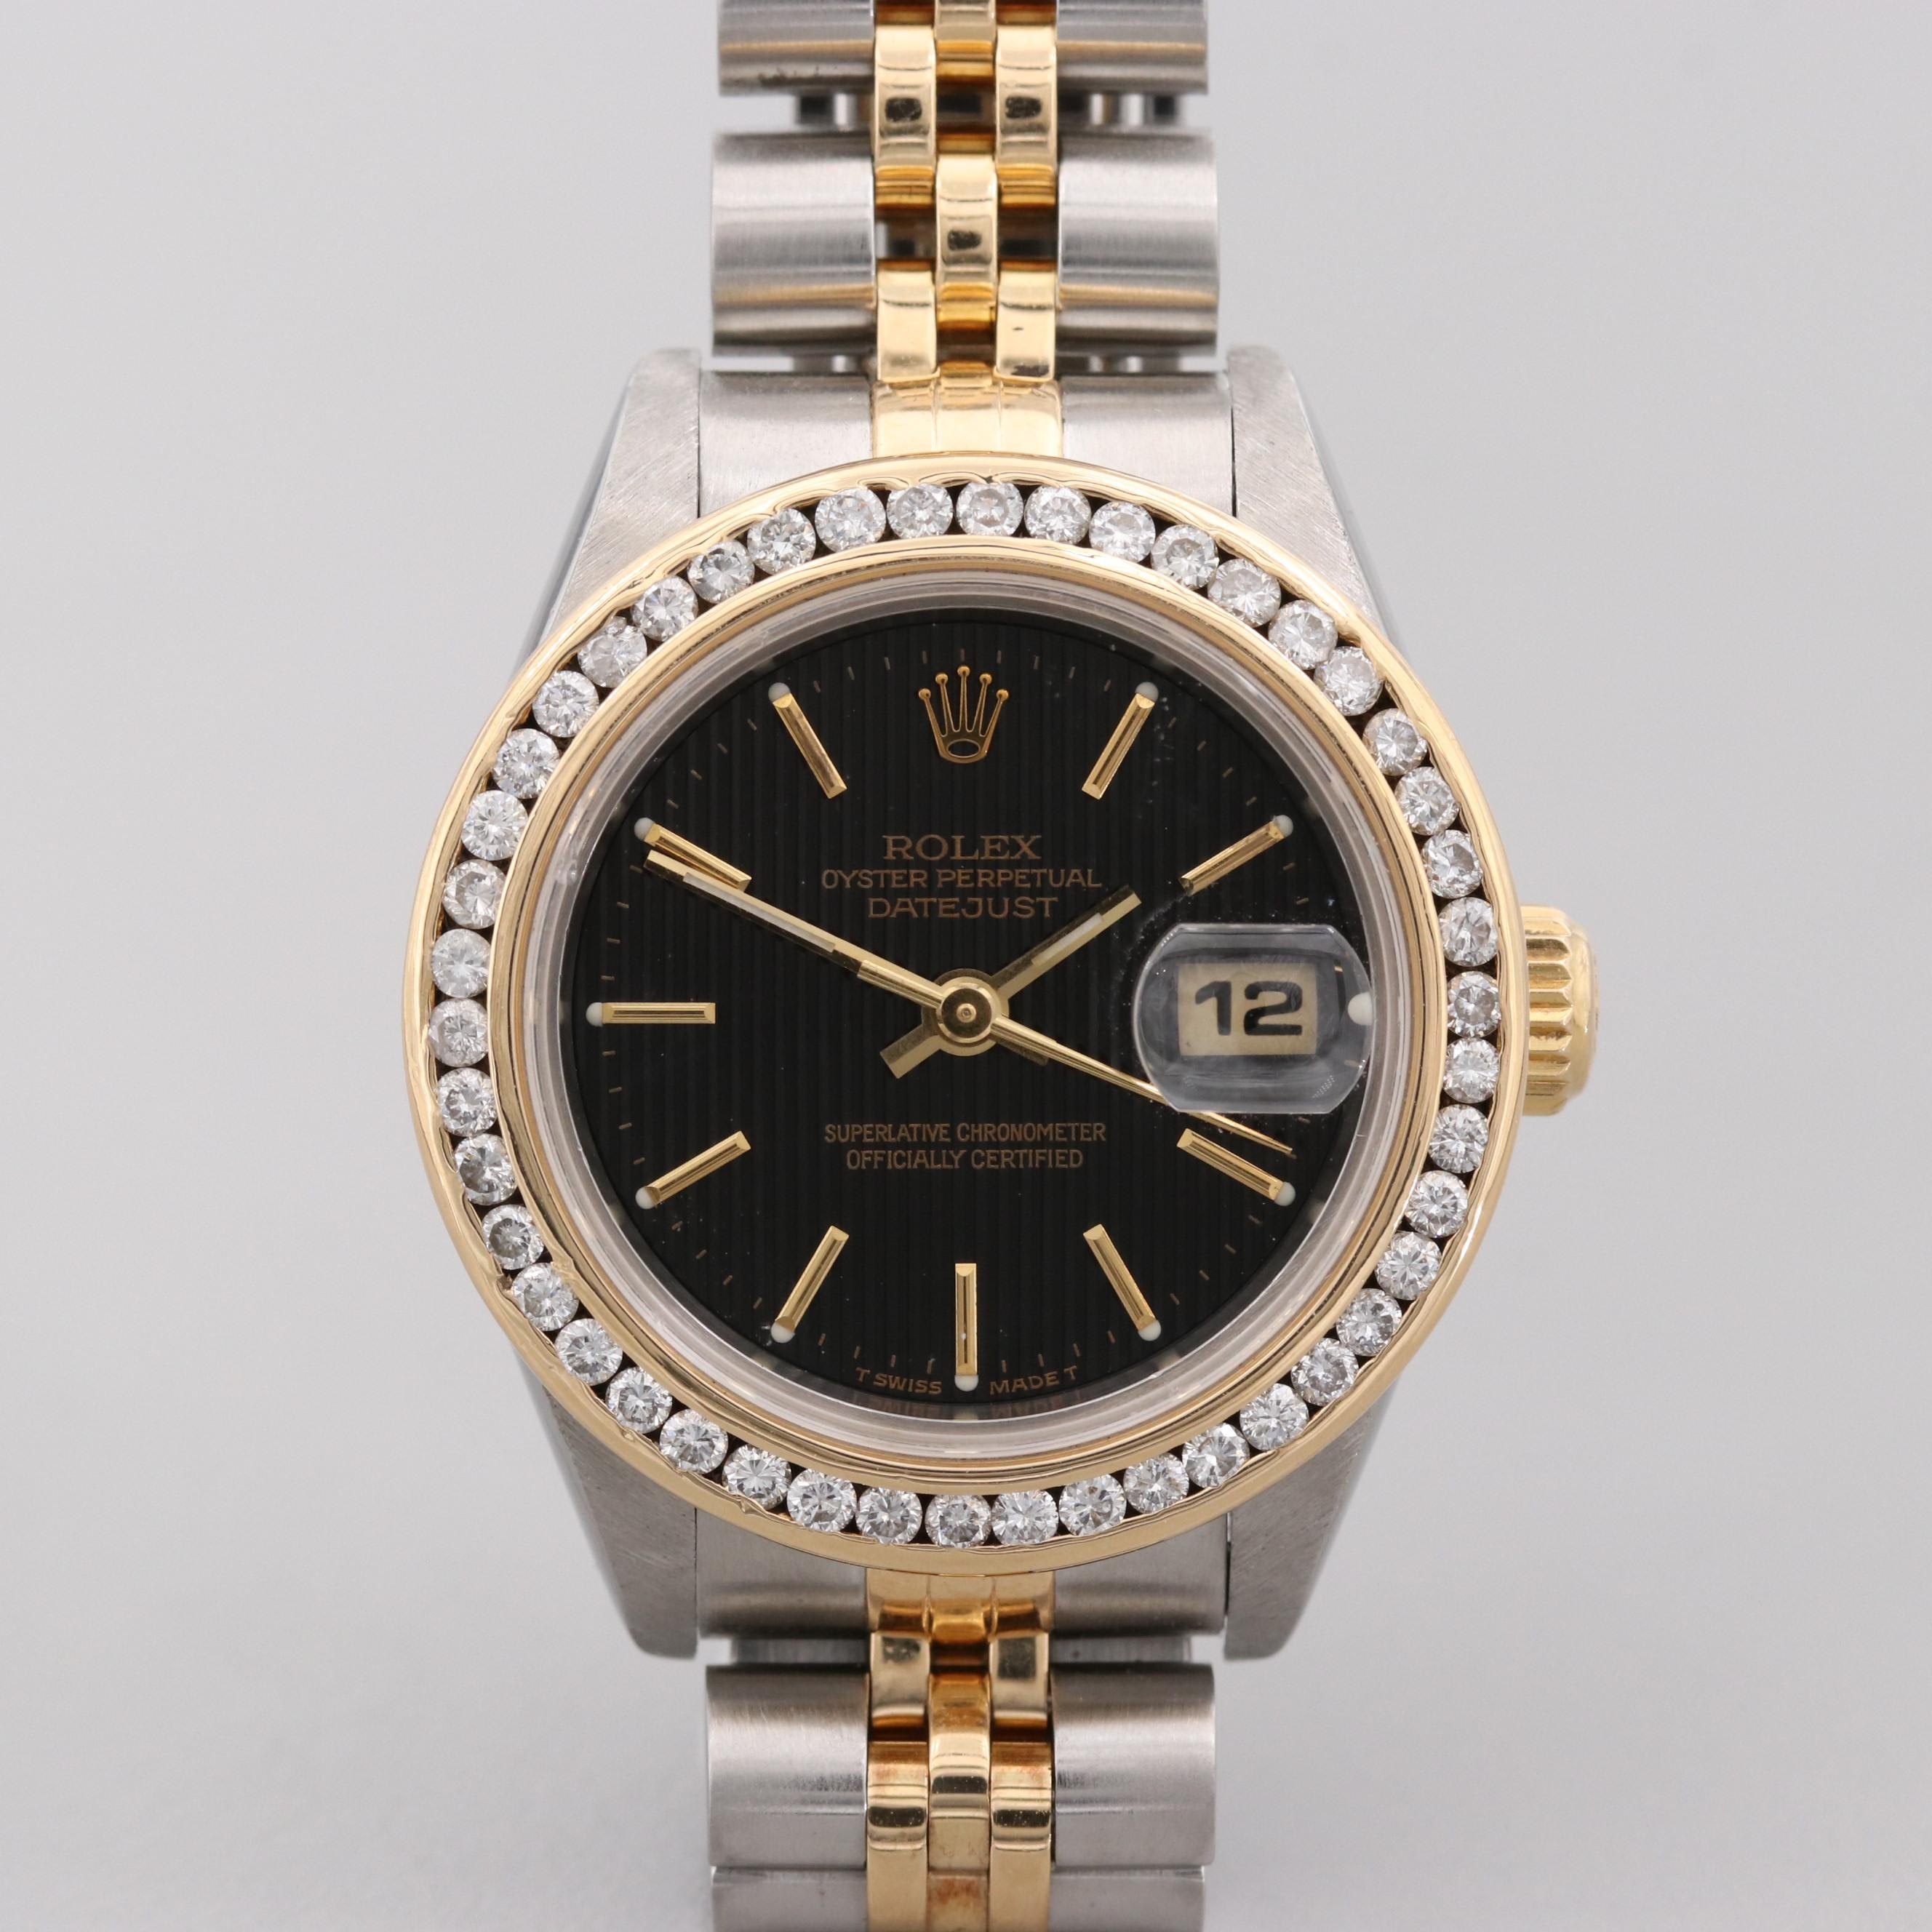 Rolex Datejust Stainless Steel, 18K Yellow Gold Wristwatch With Diamonds, 1999